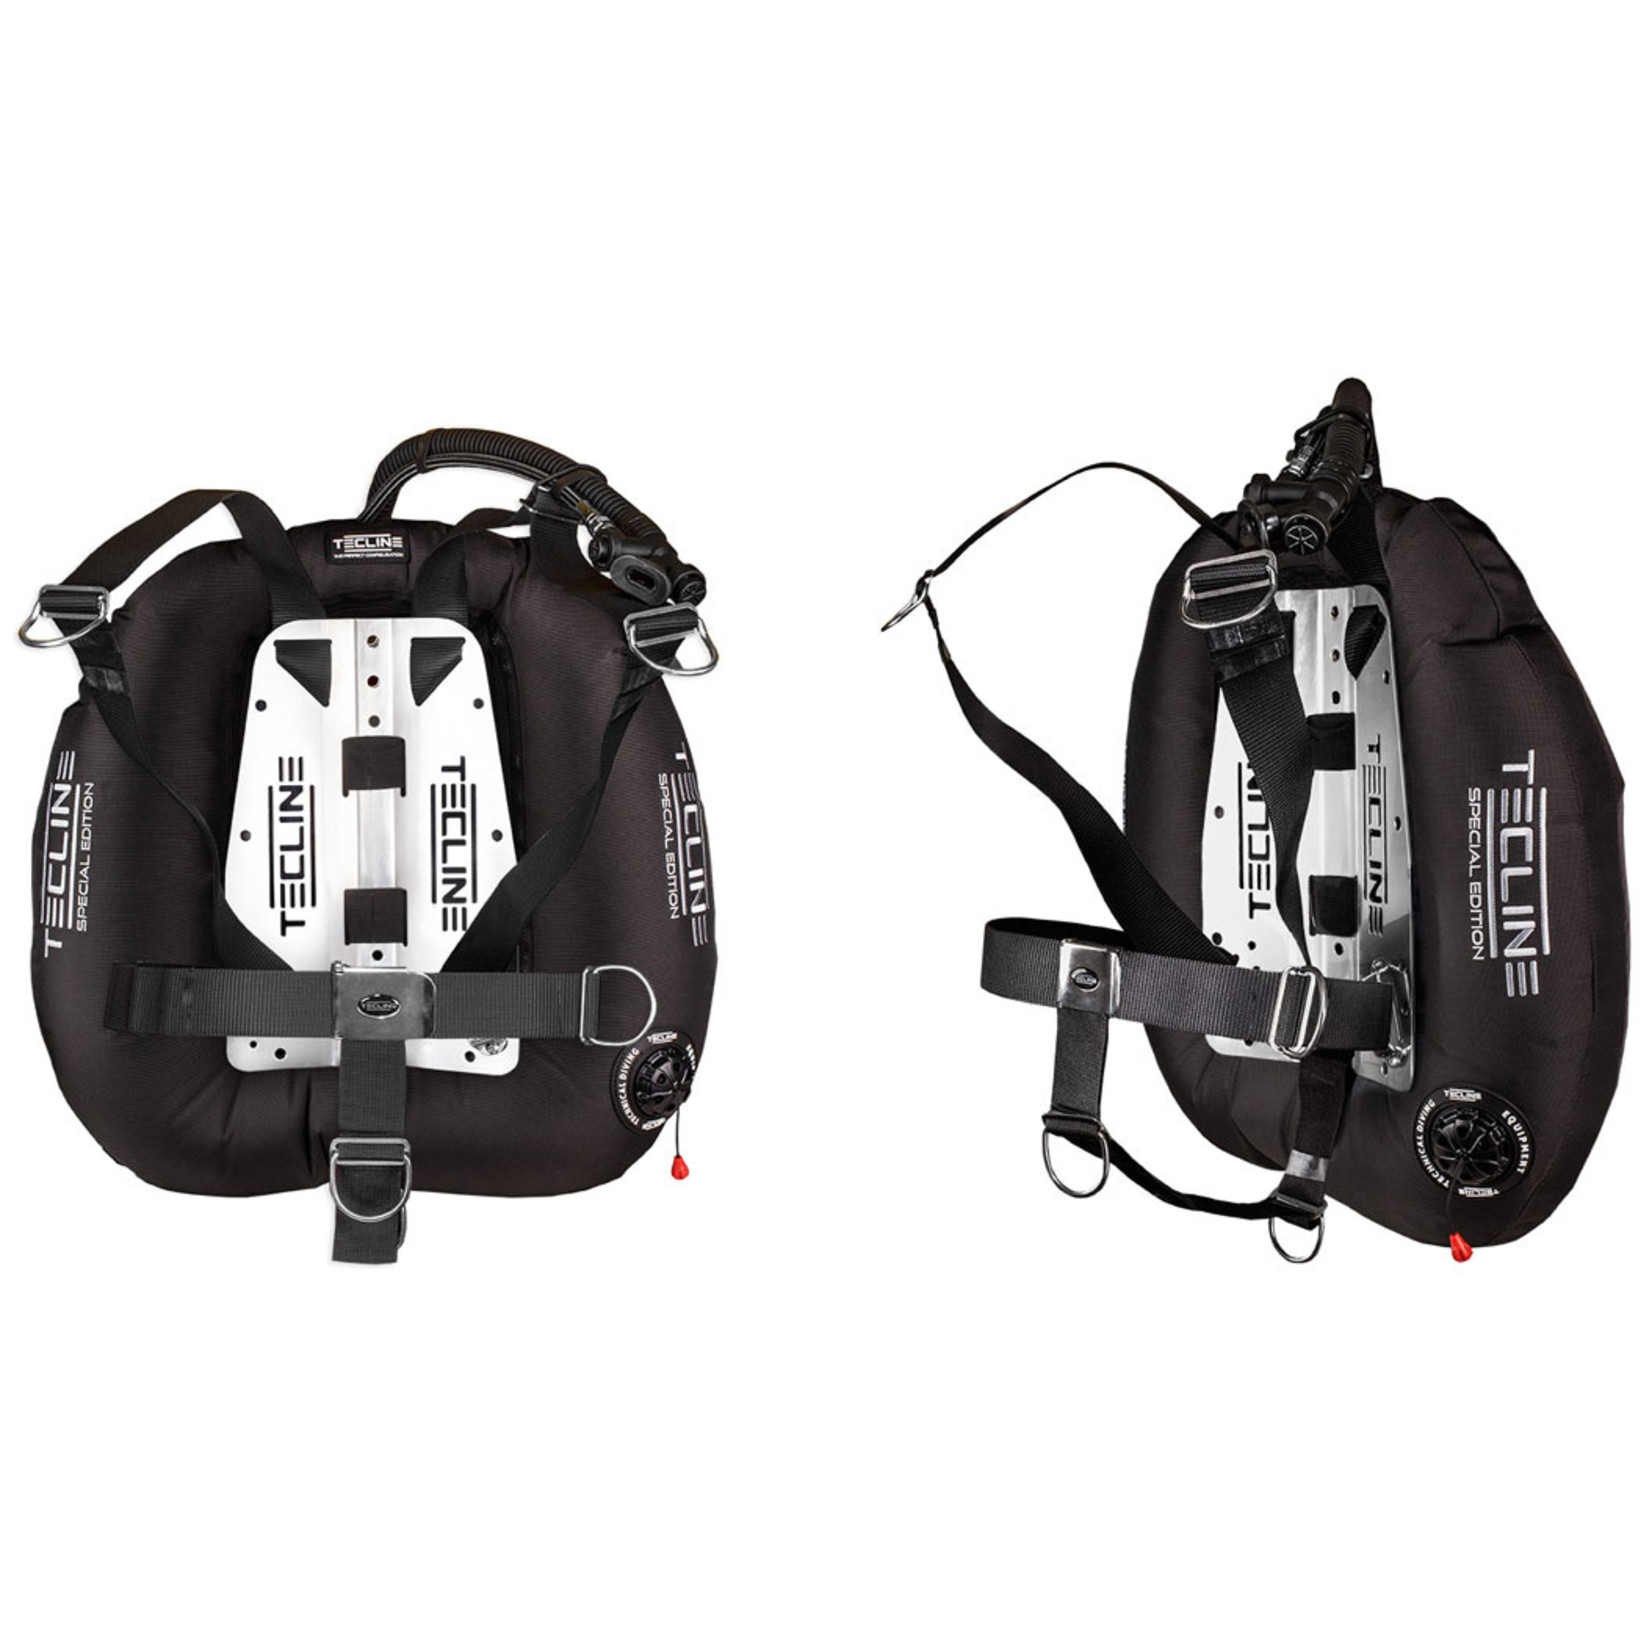 Tecline Donut 22 Special Edition black, with DIR harness &  BP